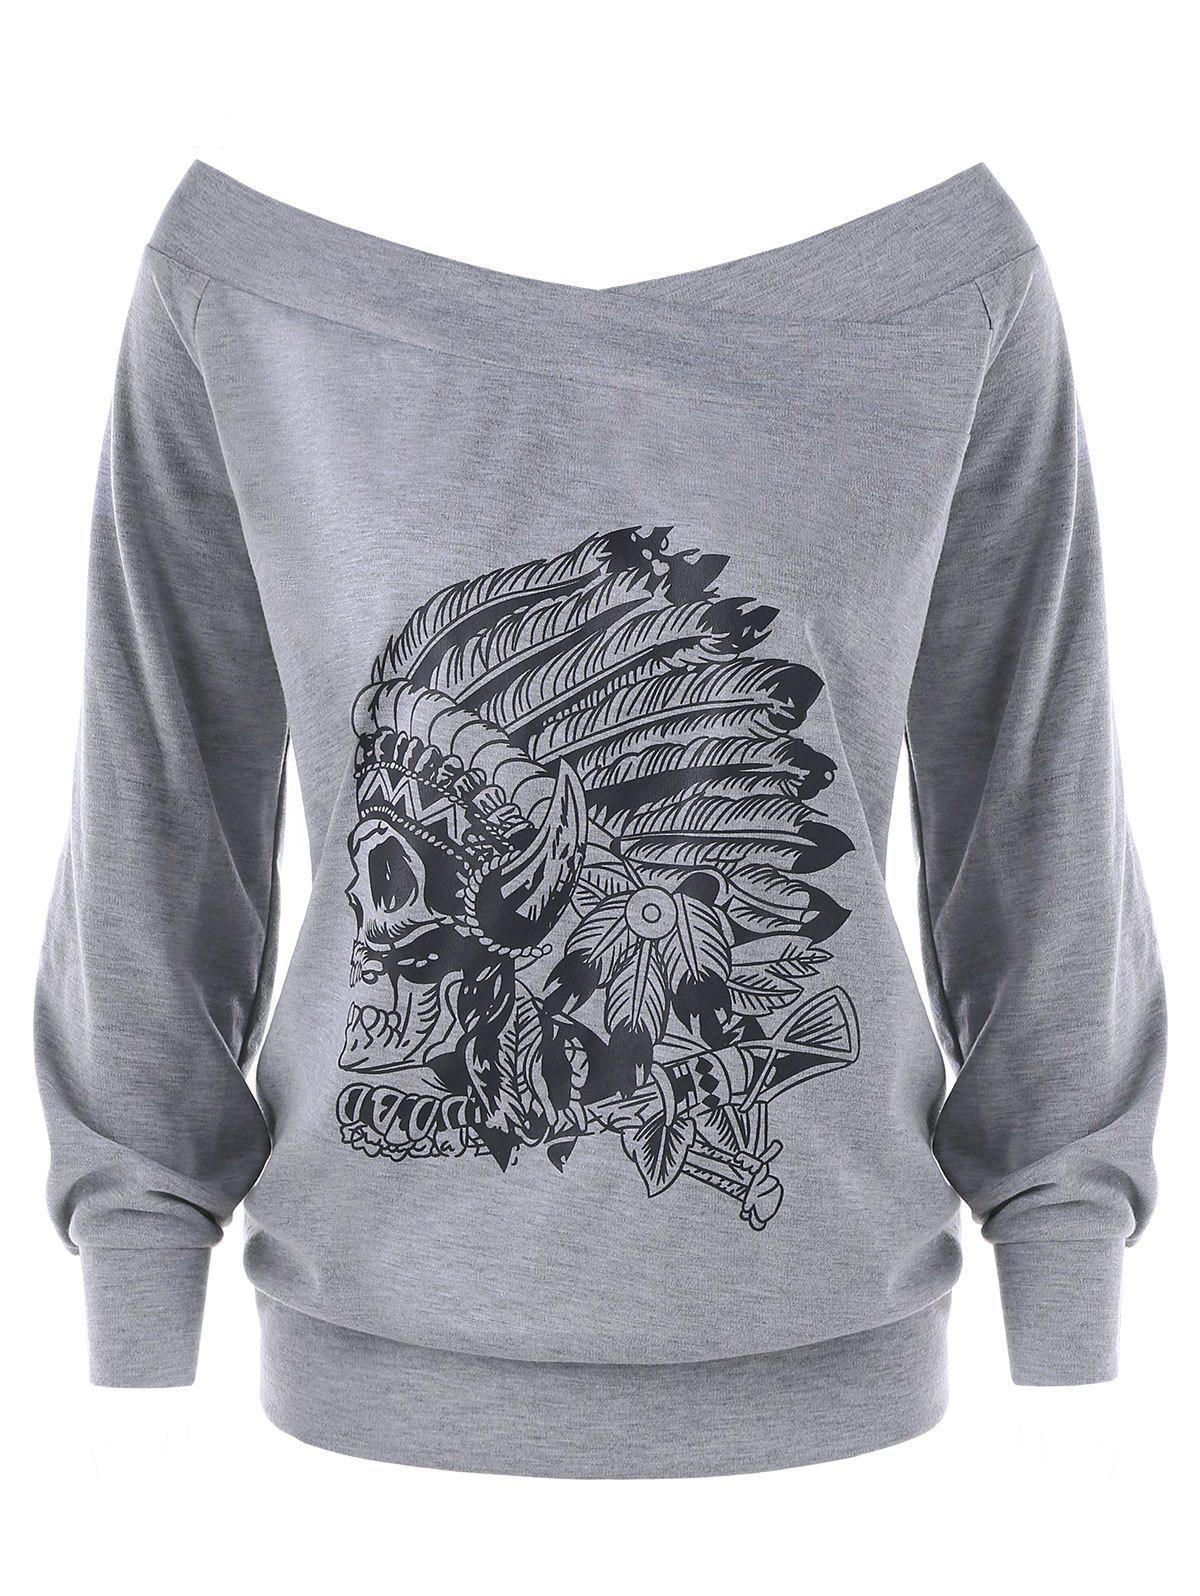 Plus Size Off The Shoulder Indian Print Pullover SweatshirtWOMEN<br><br>Size: 3XL; Color: GRAY; Material: Polyester,Spandex; Shirt Length: Regular; Sleeve Length: Full; Style: Fashion; Pattern Style: Others; Season: Fall,Spring; Weight: 0.4300kg; Package Contents: 1 x Sweatshirt;